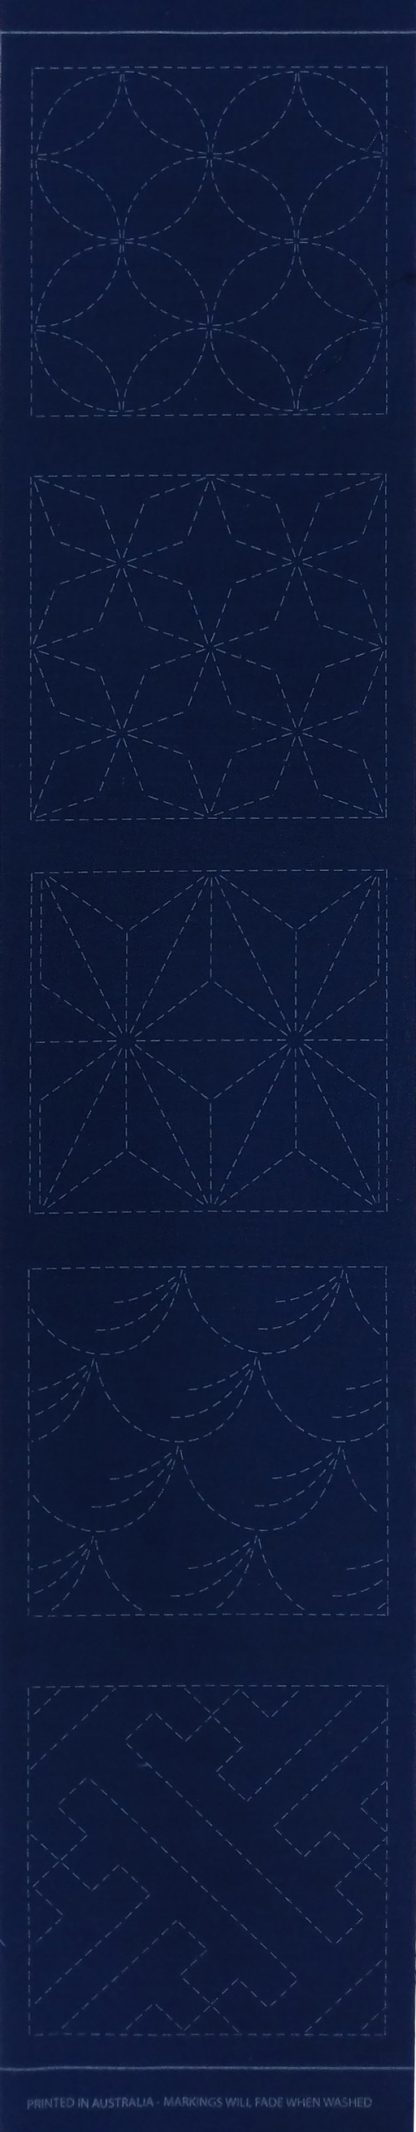 Sashiko Panel Runner No.GEO1-Indigo